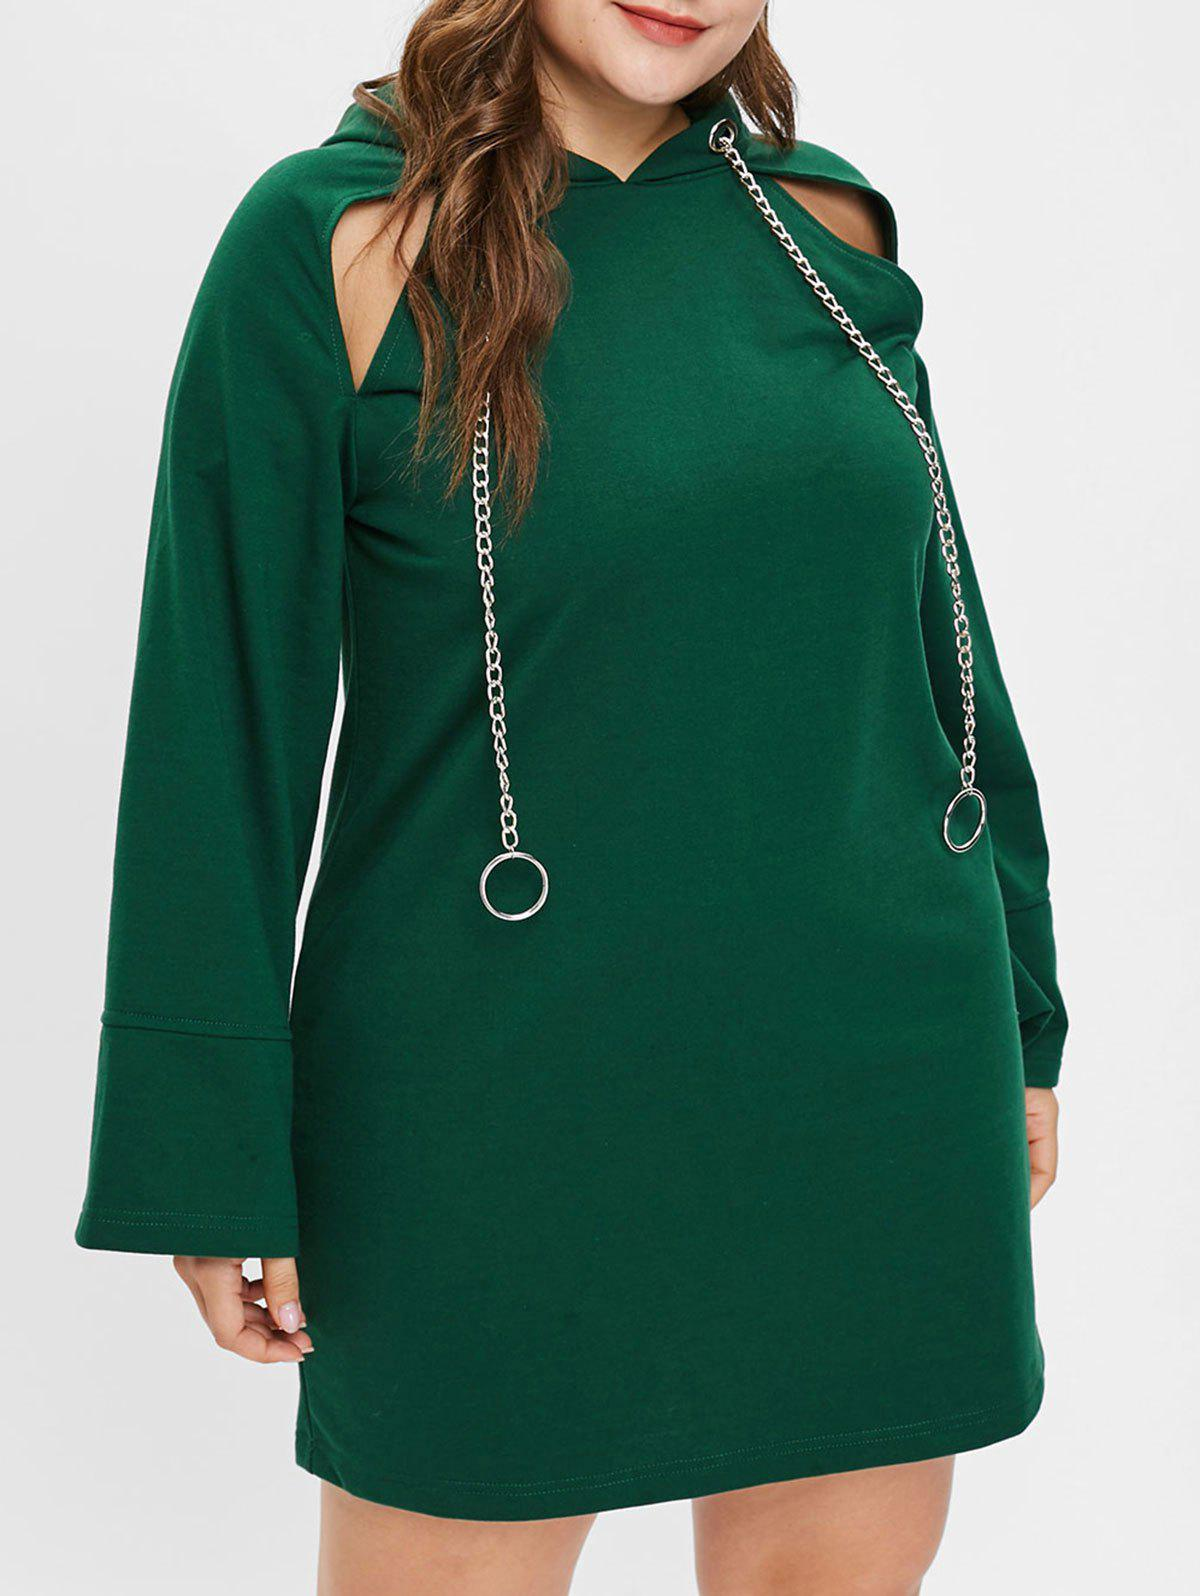 Plus Size Metal Rings Raglan Sleeve Dress - DEEP GREEN L